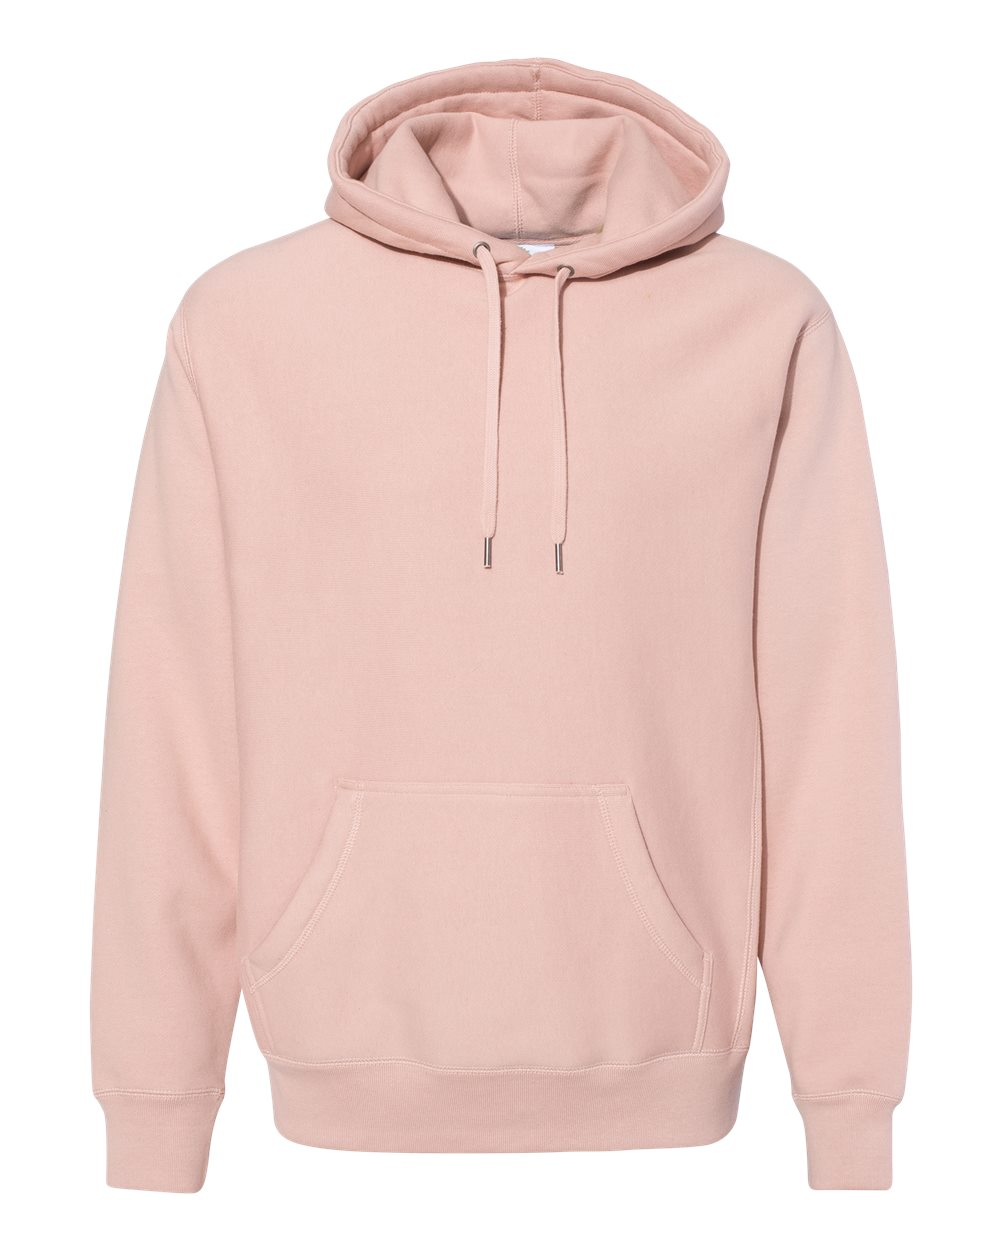 Independent-Trading-Co-Mens-Premium-Heavyweight-Cross-Grain-Hoodie-IND5000P thumbnail 18